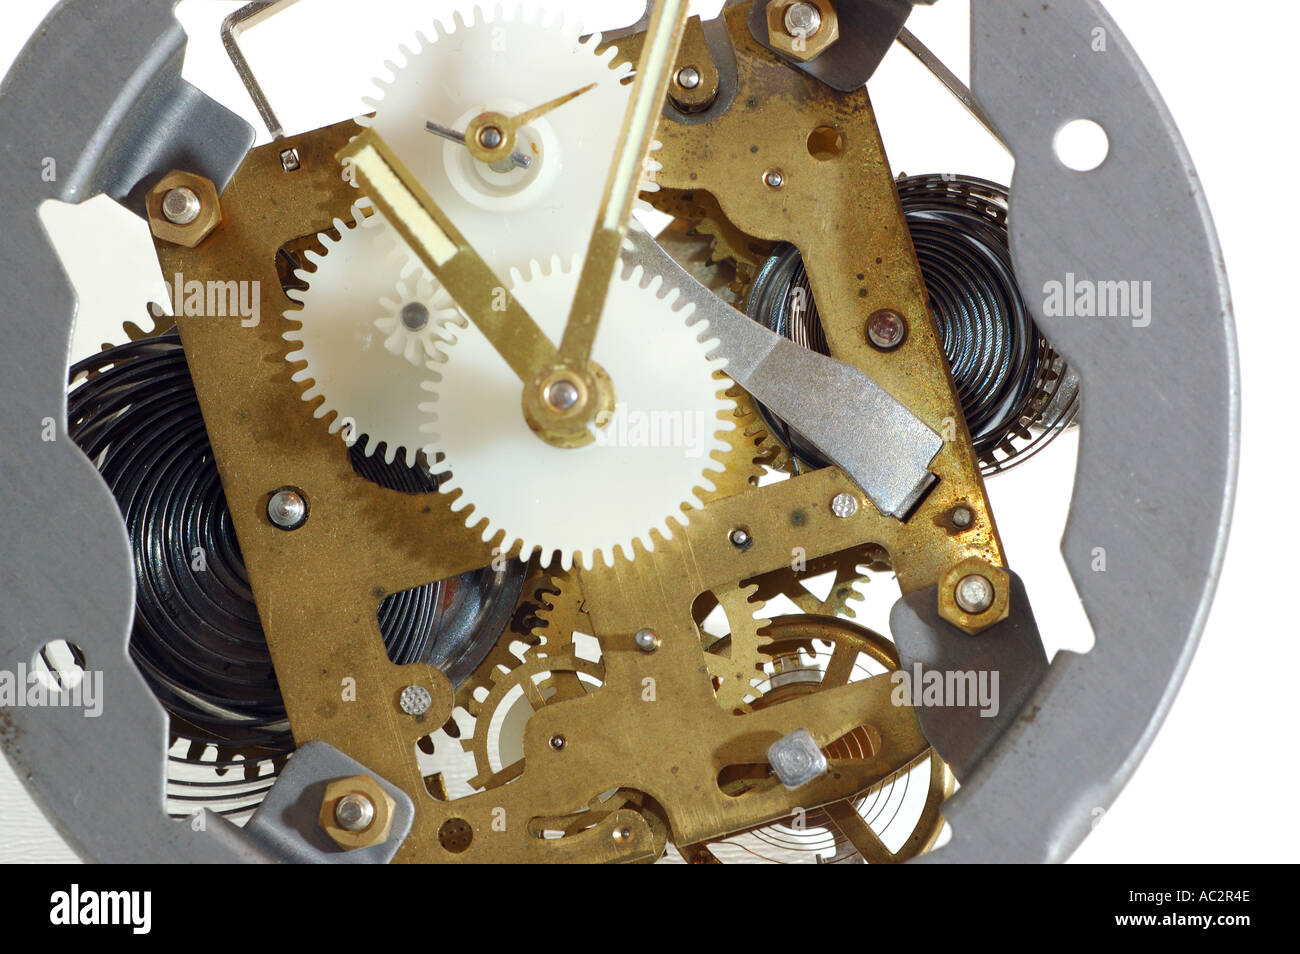 Inner working parts of an old windup clock on white background - Stock Image